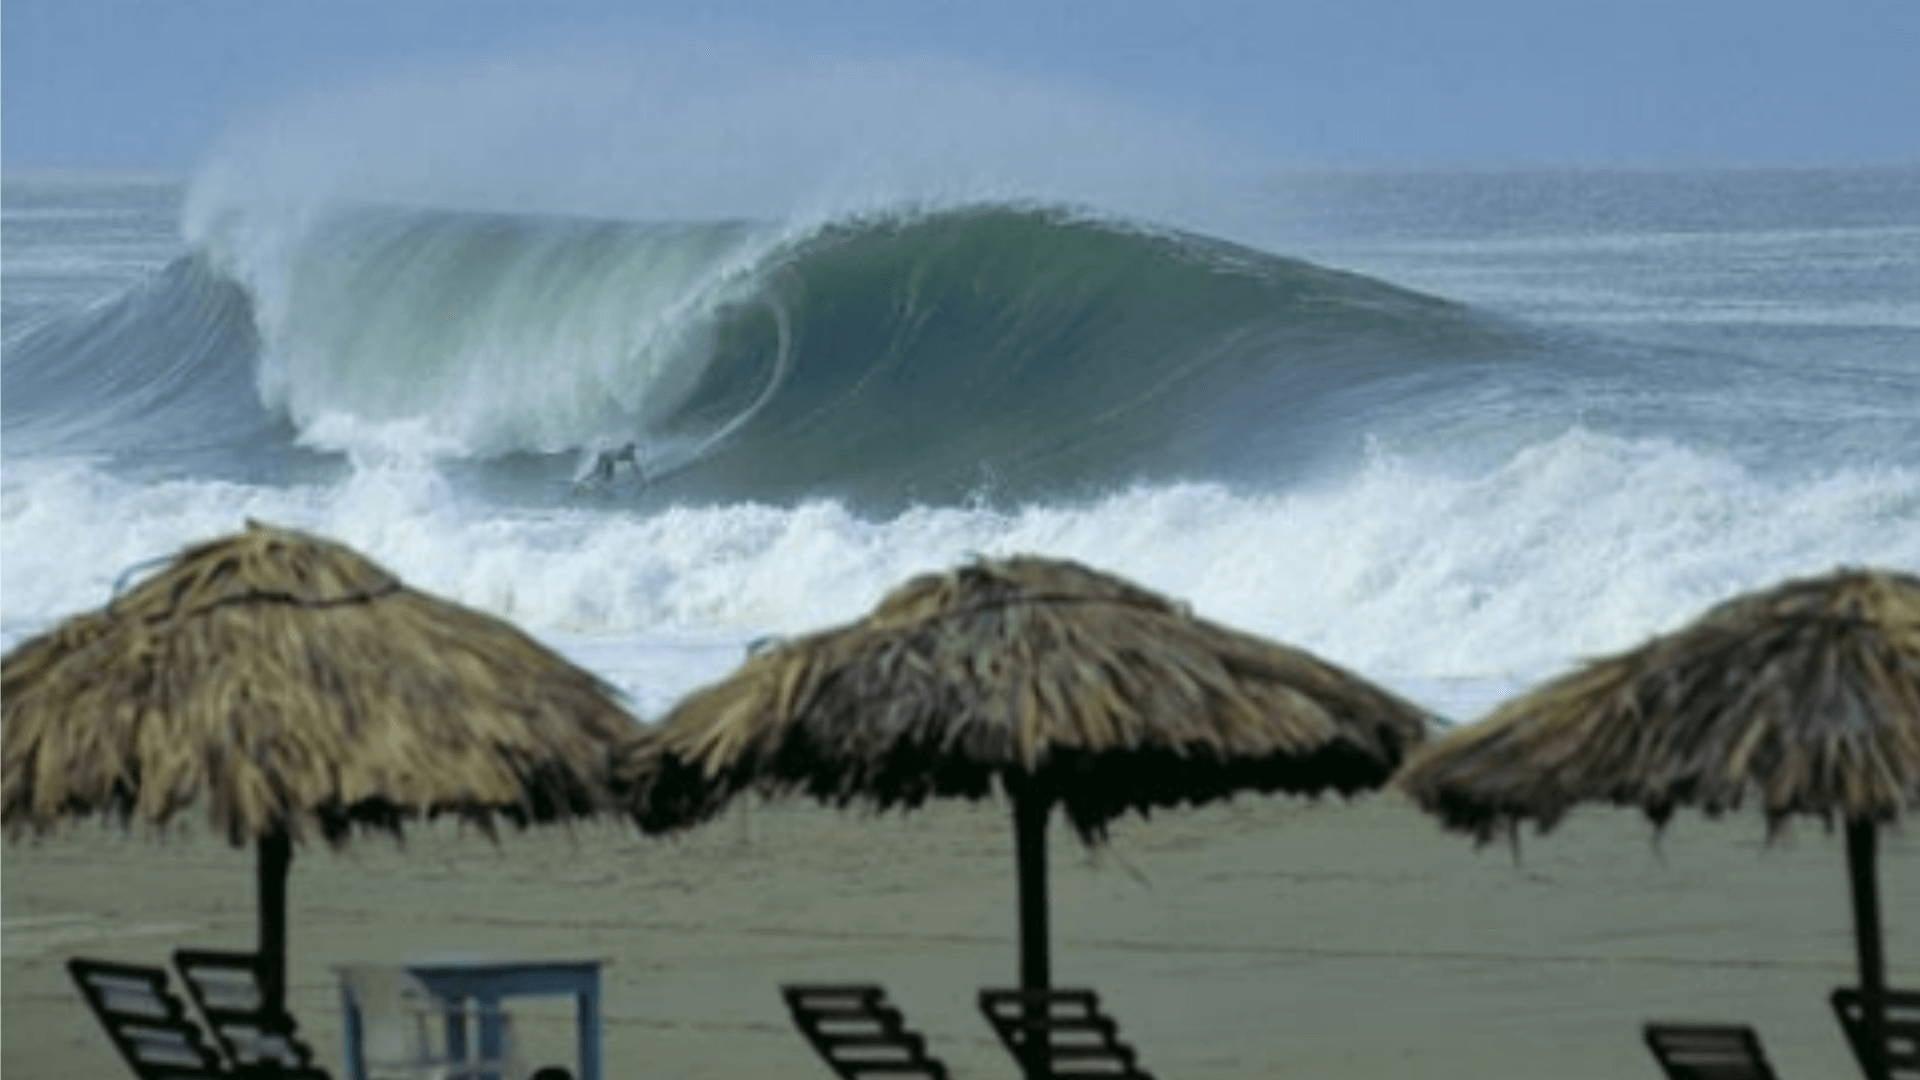 Surfing in Oaxaca